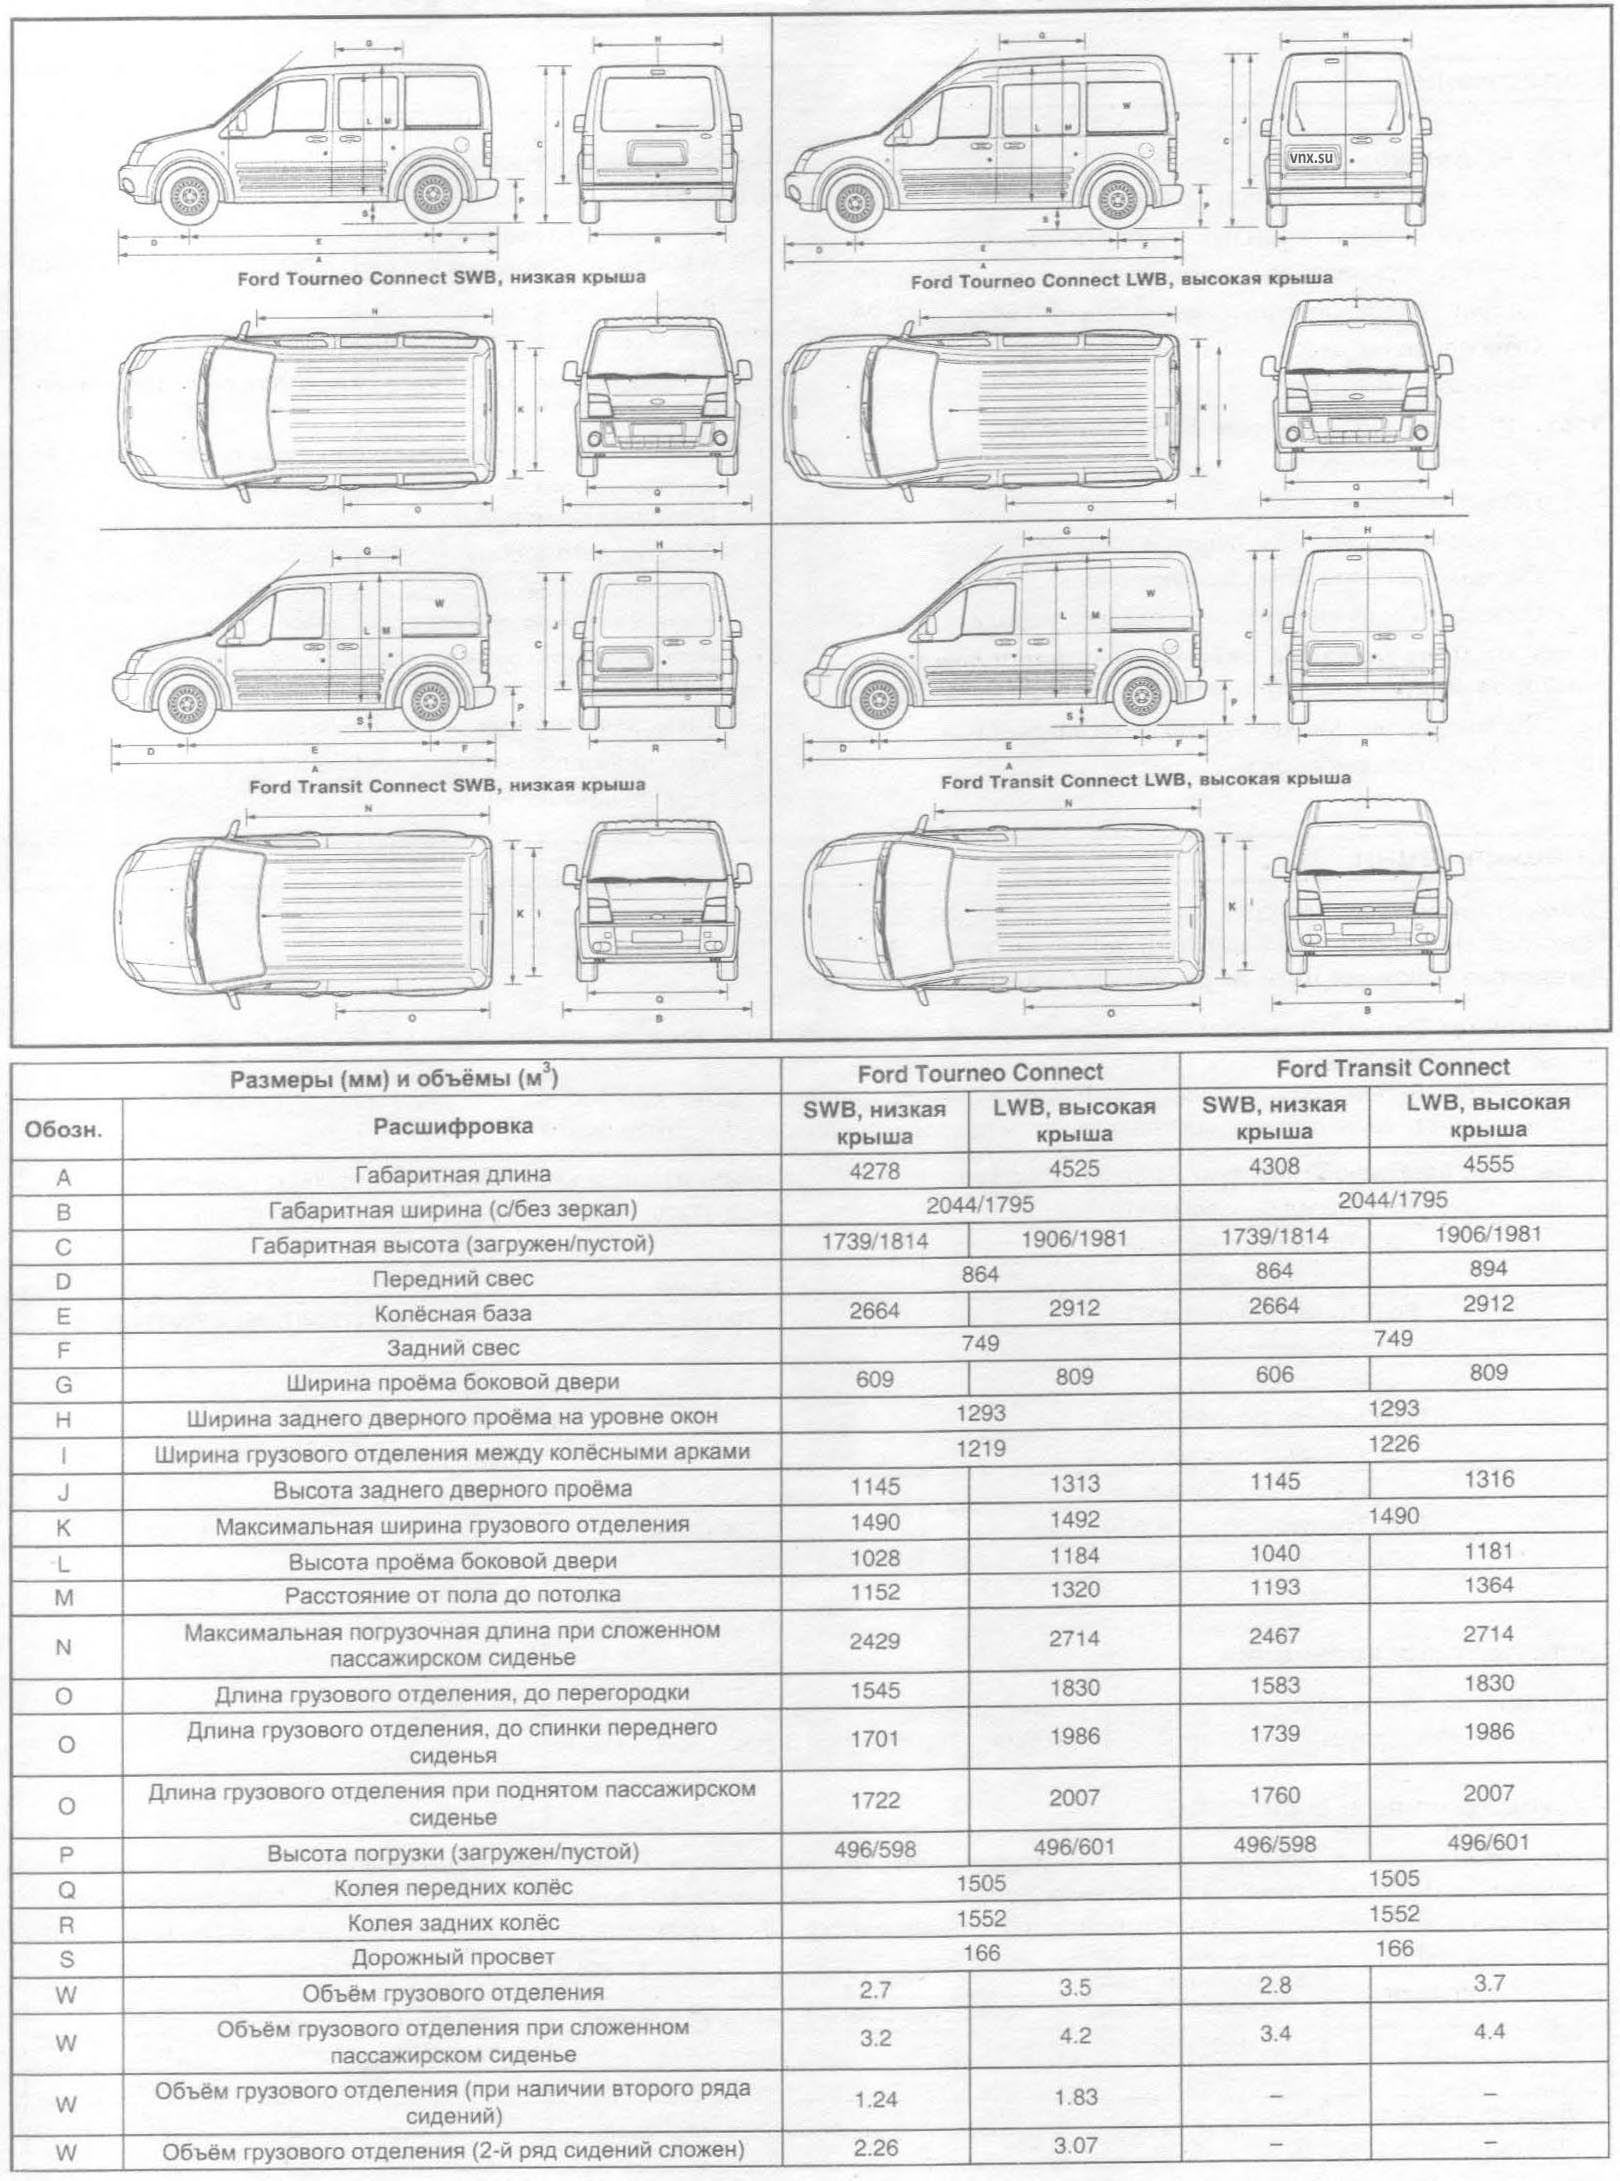 2010 Ford Transit Connect Fuse Box Diagram Wiring Library E350 Engine Free Image For 2002 Van